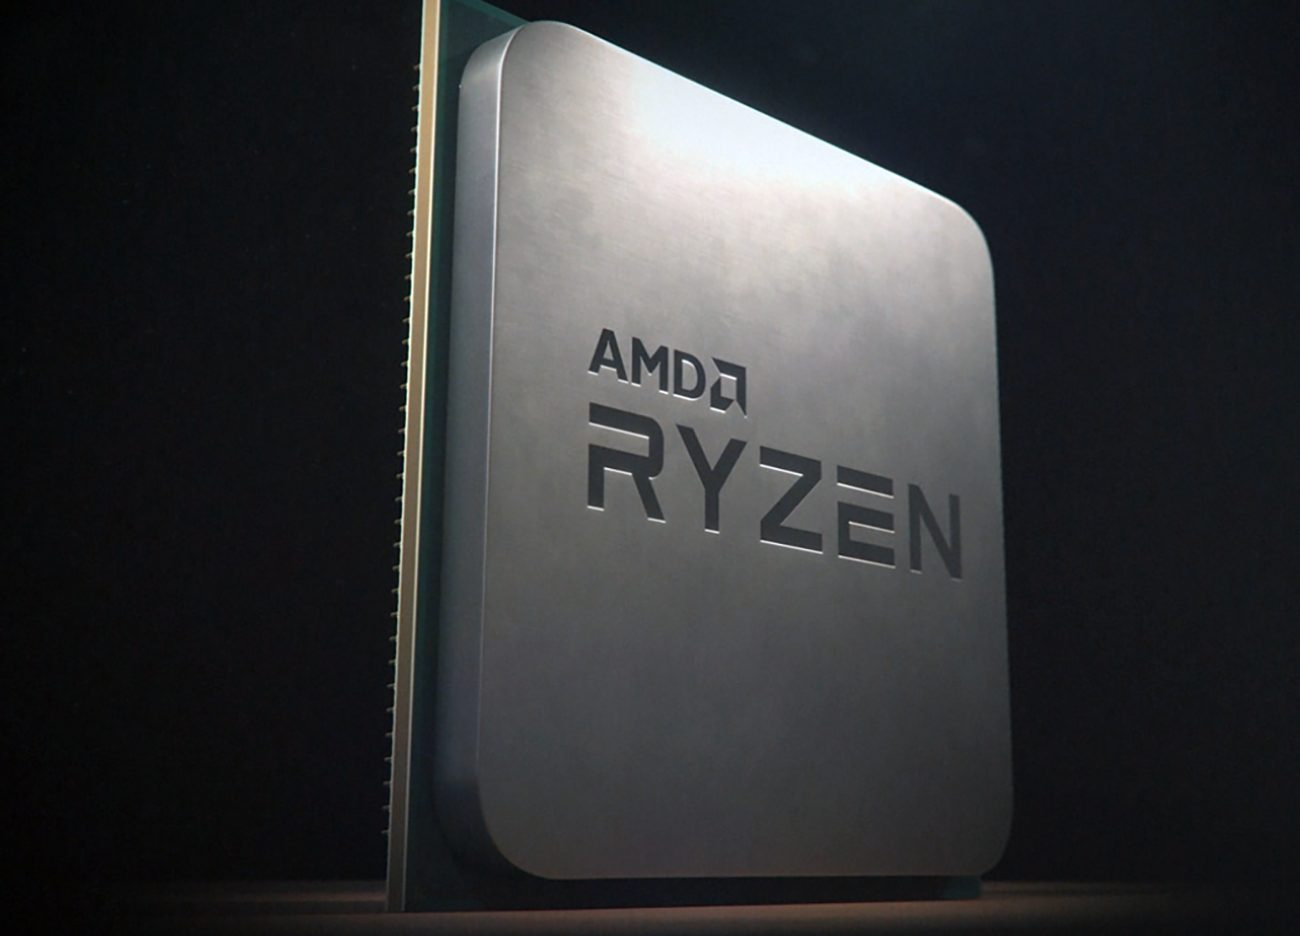 AMD Ryzen 9 3900X CPU Review New BIOS Performance Tested - Page 3 of 7